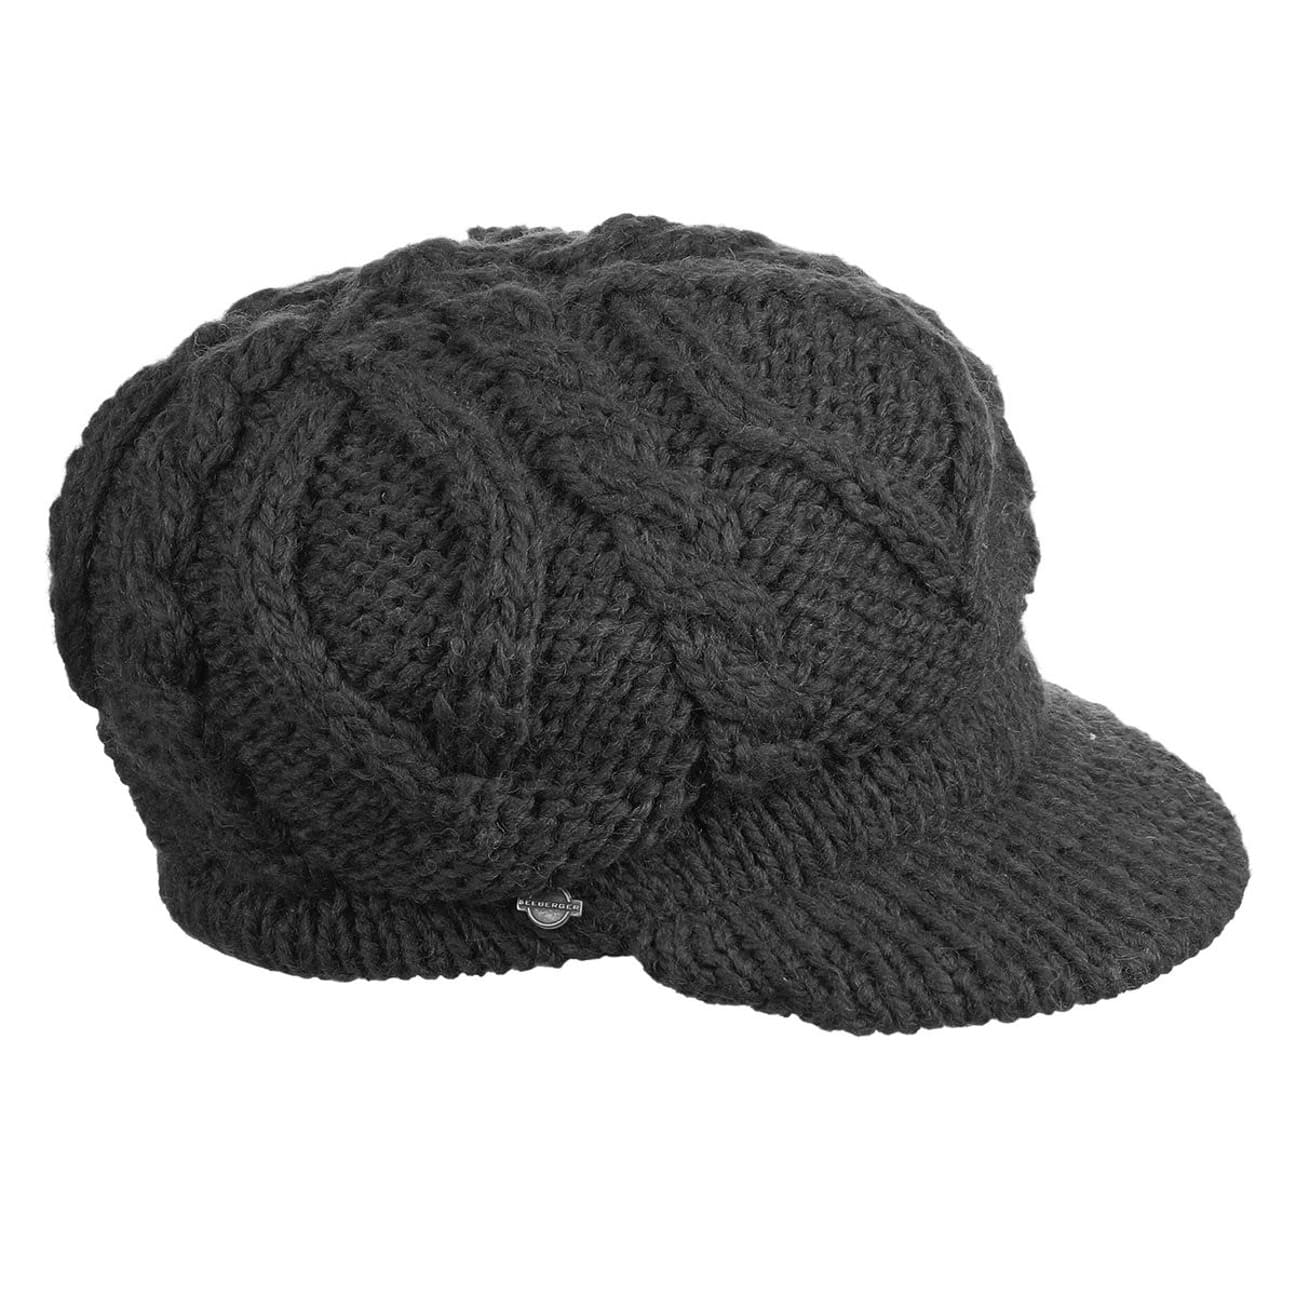 Hand knitted Baker Boy Hat Tmdcraft. 5 out of 5 stars (7) $ Favorite Add to See similar items Dolls NewsBoy Hat, Stone Baker Boy Dolls Beanie Hat, Dolls Peak Hat, Dolls Beanie Peaked Hat, Well you're in luck, because here they come. There are baker boy hat for sale on Etsy, and they cost $ on average.